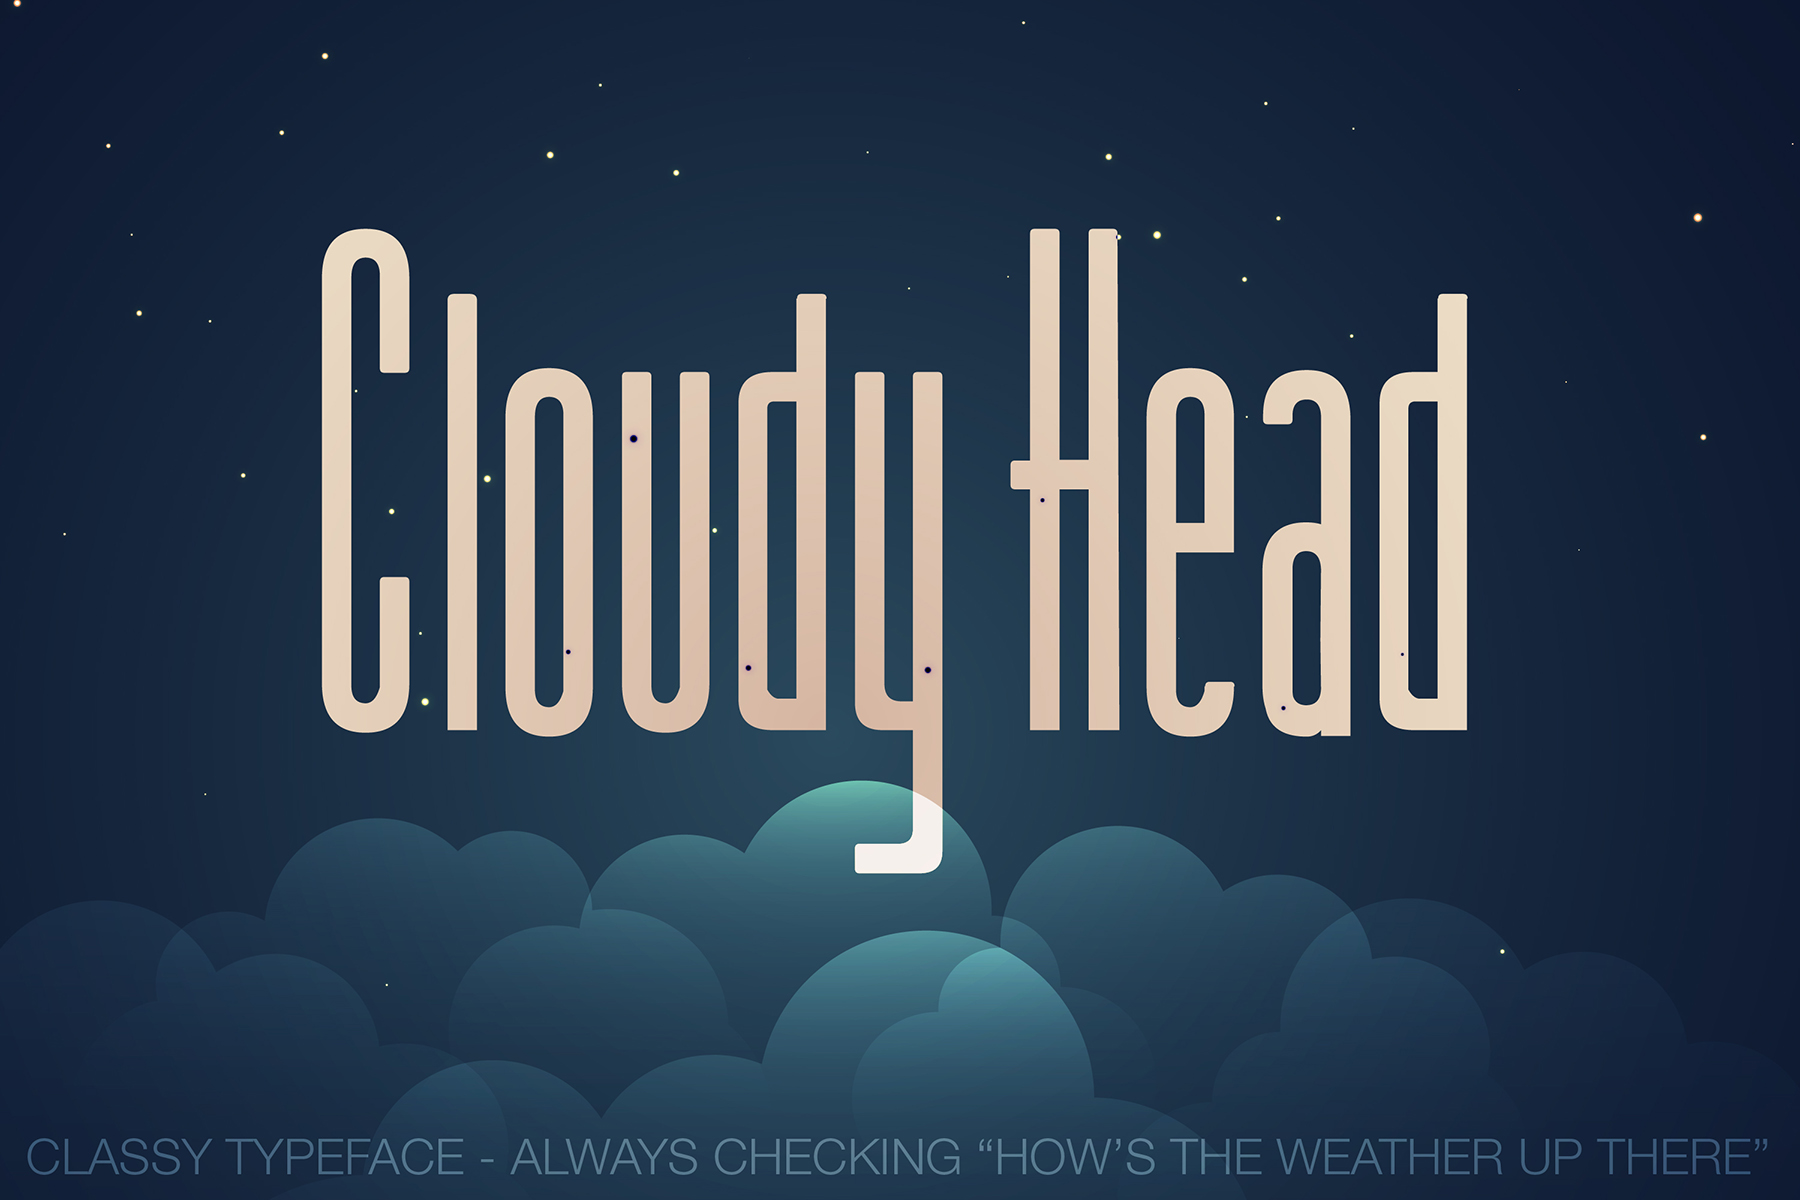 Cloudy Head Regular - Tall Font, Classy Typeface example image 1